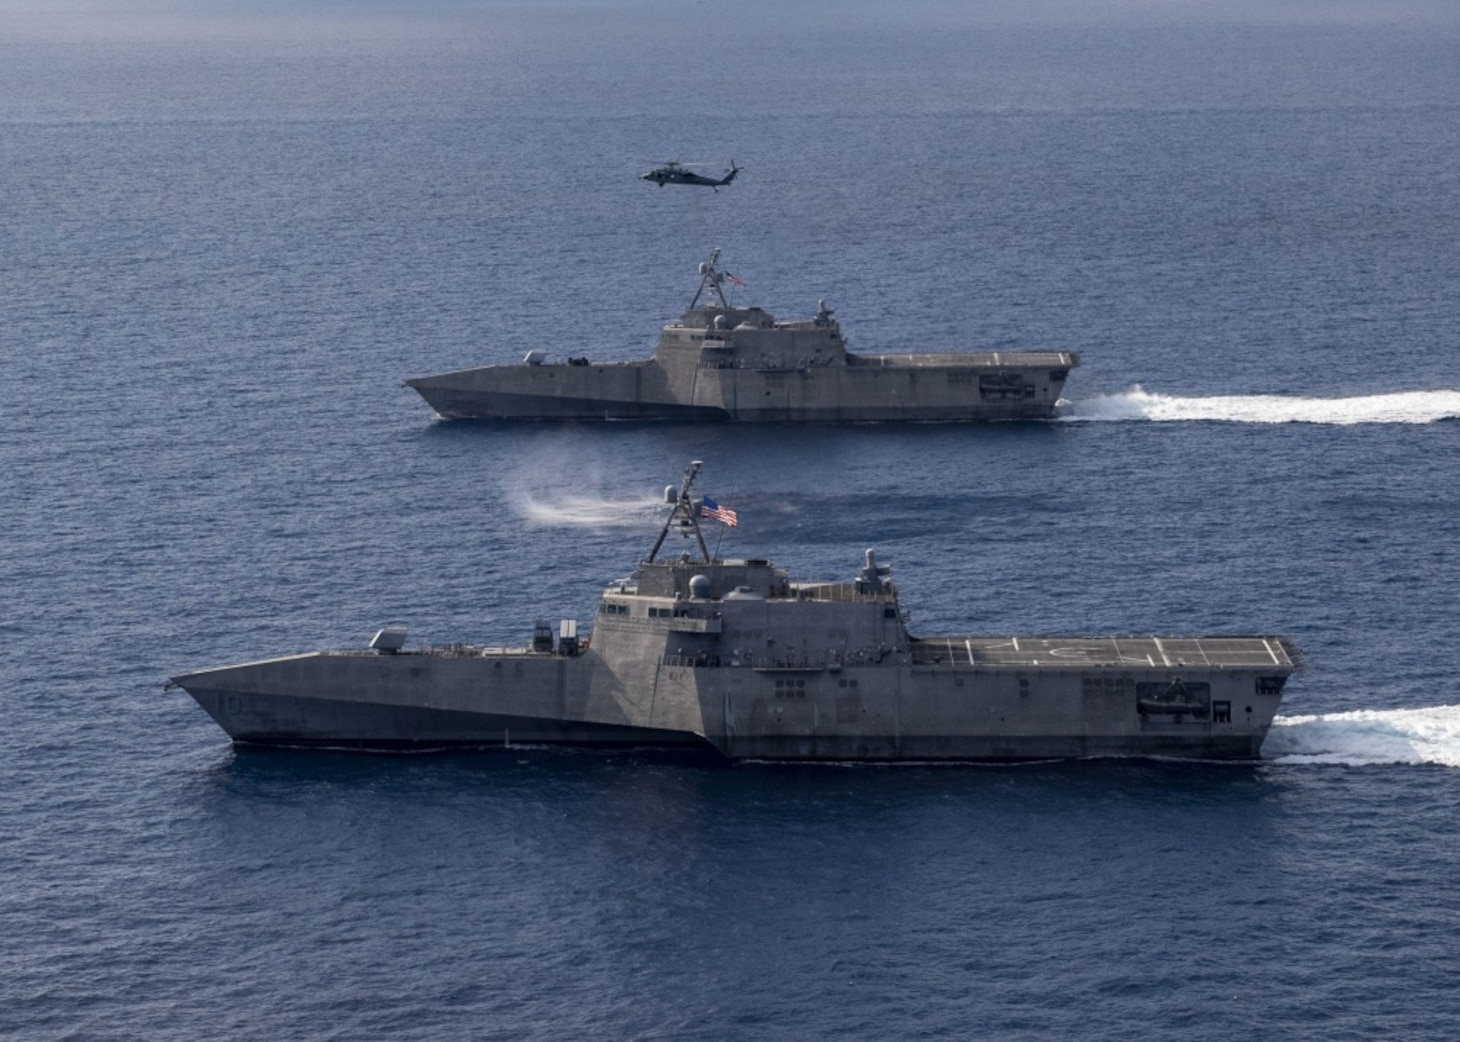 SOUTH CHINA SEA (Jan. 28, 2020) The Independence-variant littoral combat ships USS Gabrielle Giffords (LCS 10), bottom, and USS Montgomery (LCS 8) operate in the South China Sea, accompanied by an MH-60S Sea Hawk of Helicopter Sea Combat Squadron (HSC) 23, Jan. 28, 2020. Montgomery and Gabrielle Giffords are on rotational deployments to USINDOPACOM, conducting operations, exercises and port visits throughout the region and working hull-to-hull with allied and partner navies to provide maritime security and stability, key pillars of a free and open Indo-Pacific.